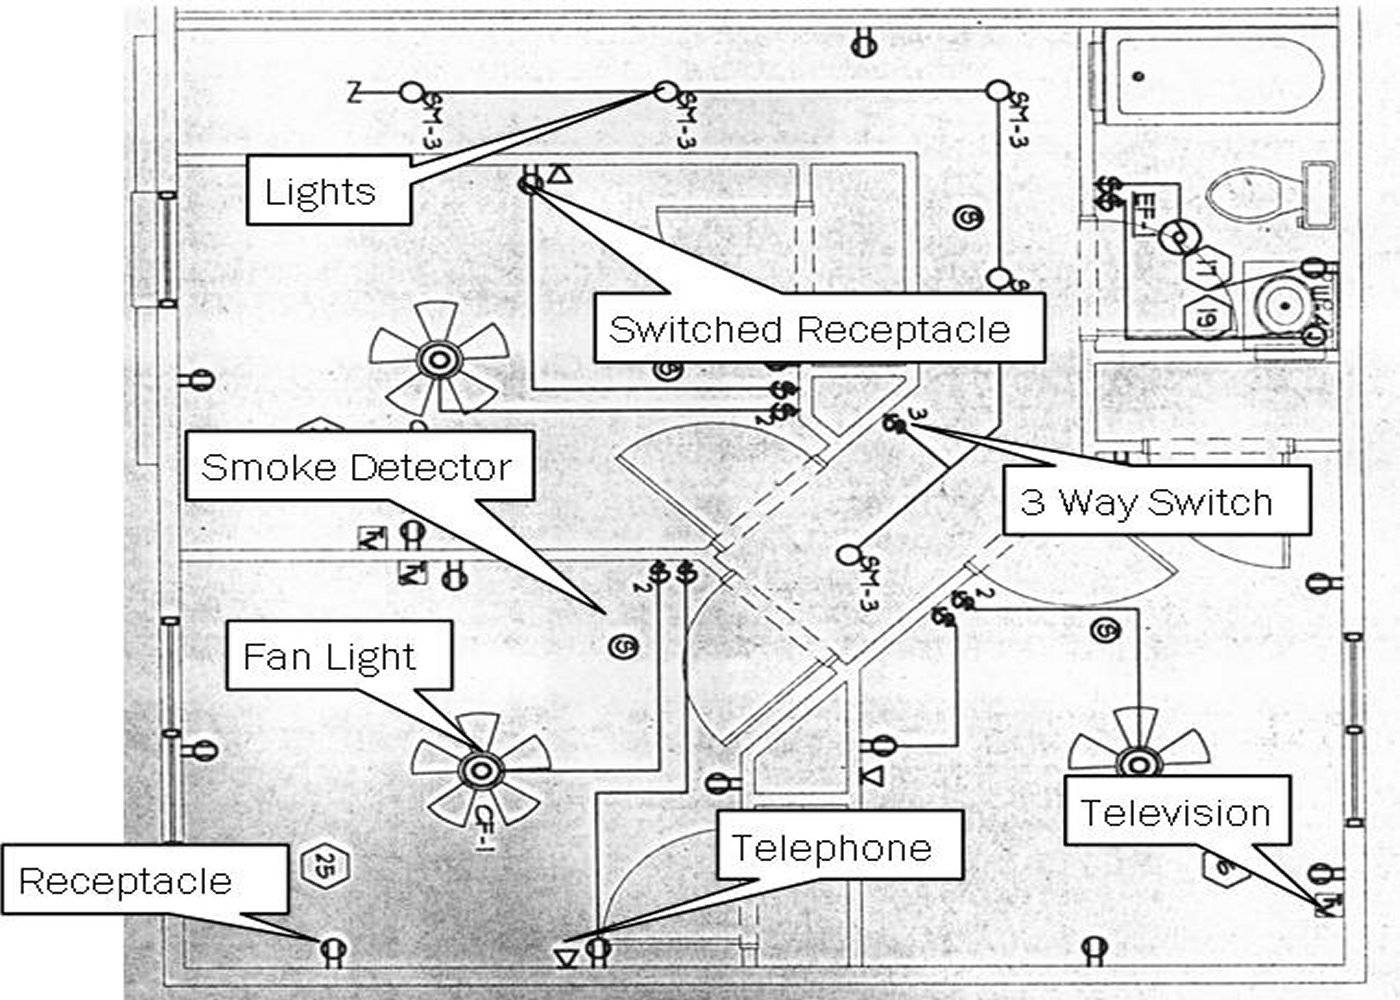 House Electrical Outlet Wiring Diagrams